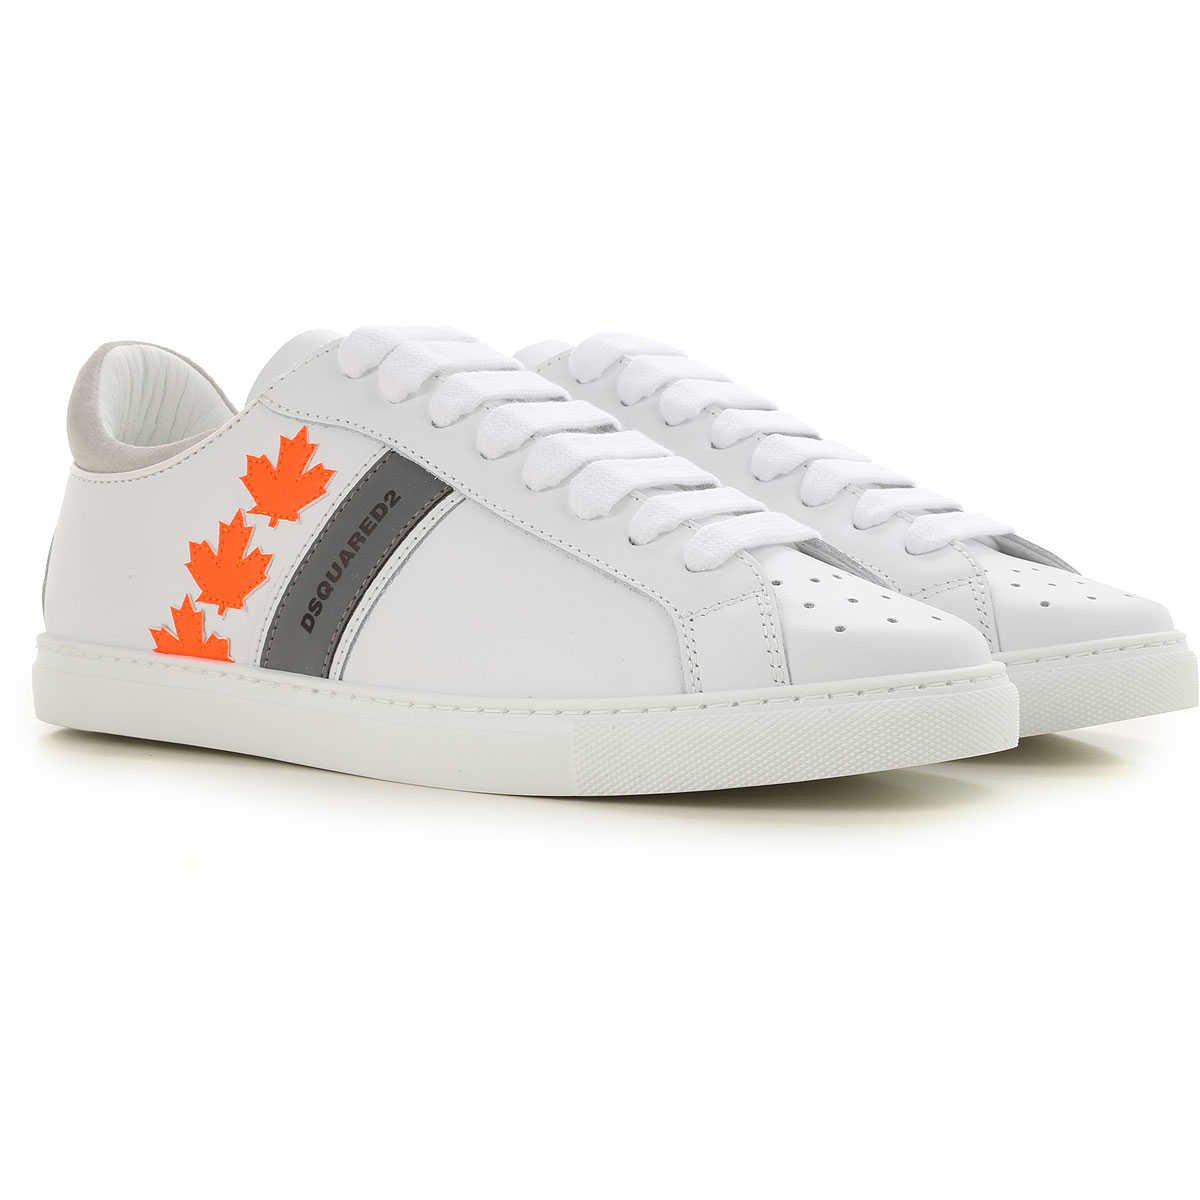 Dsquared2 Sneakers for Men On Sale White SE - GOOFASH